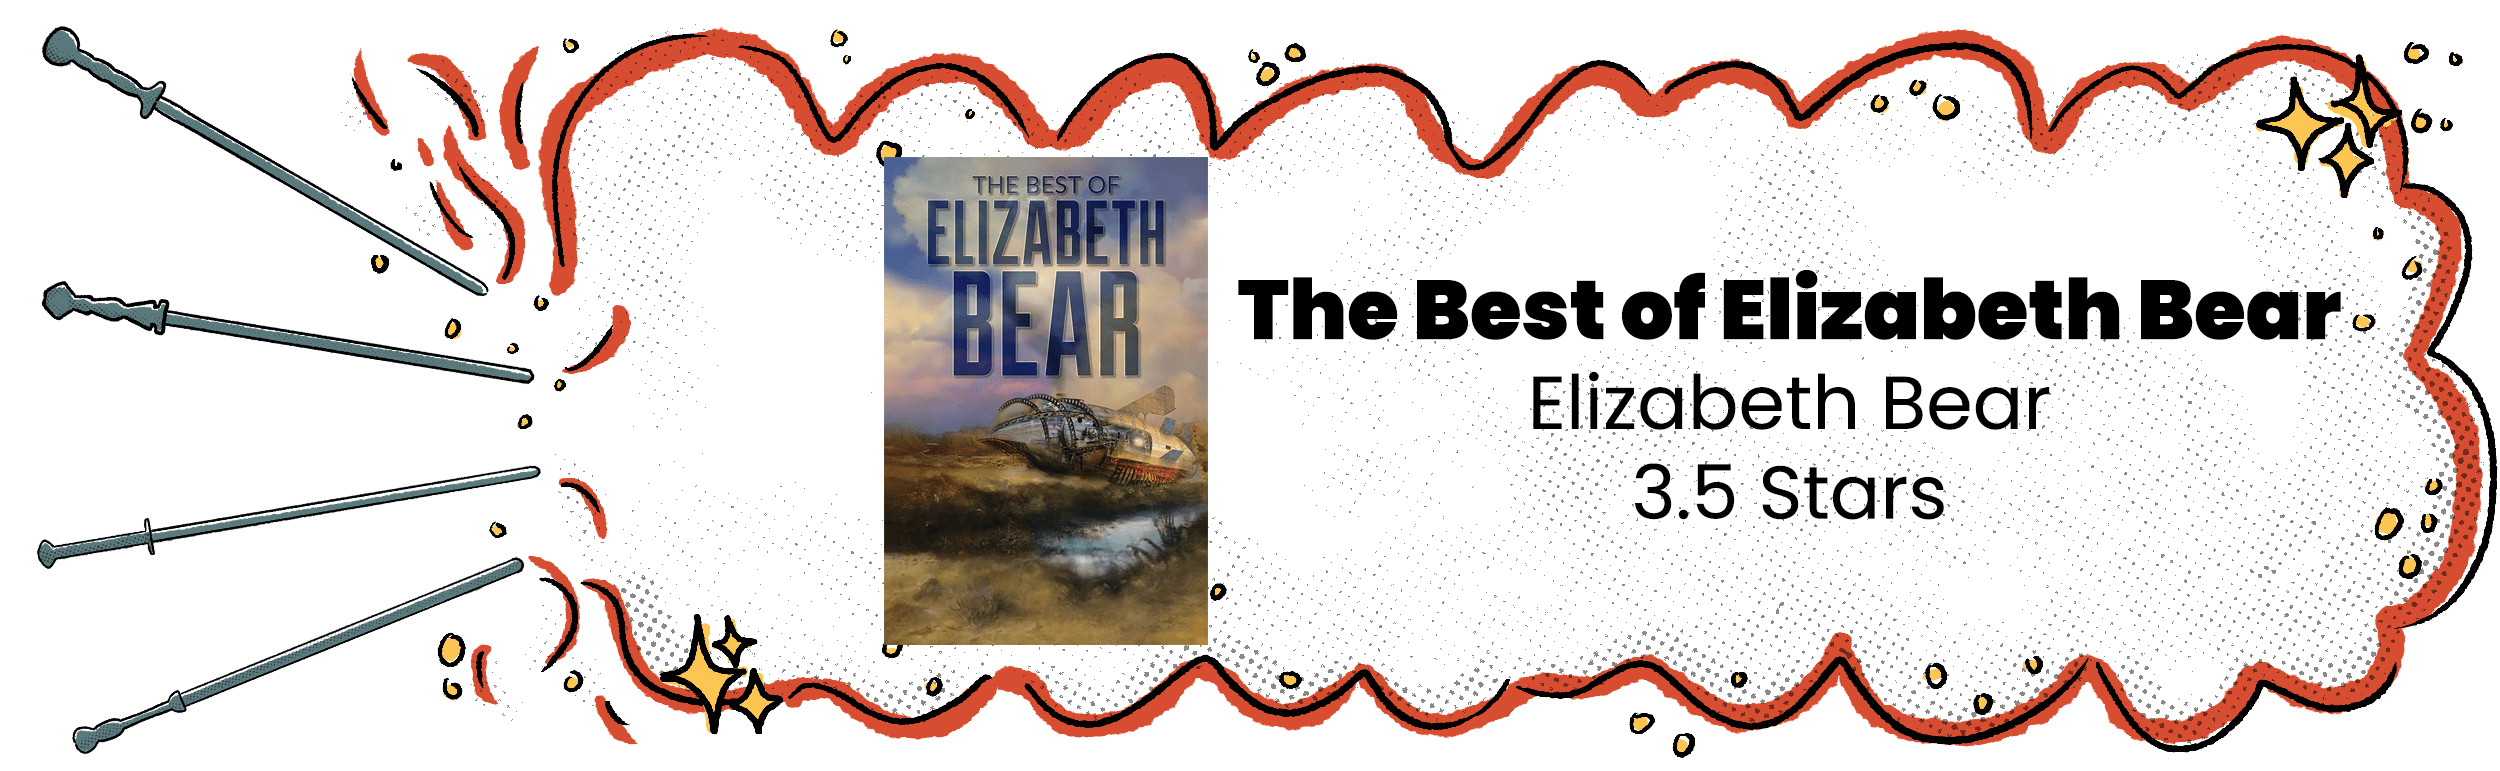 Review banner with The Best of Elizabeth Bear cover and 3.5 star rating